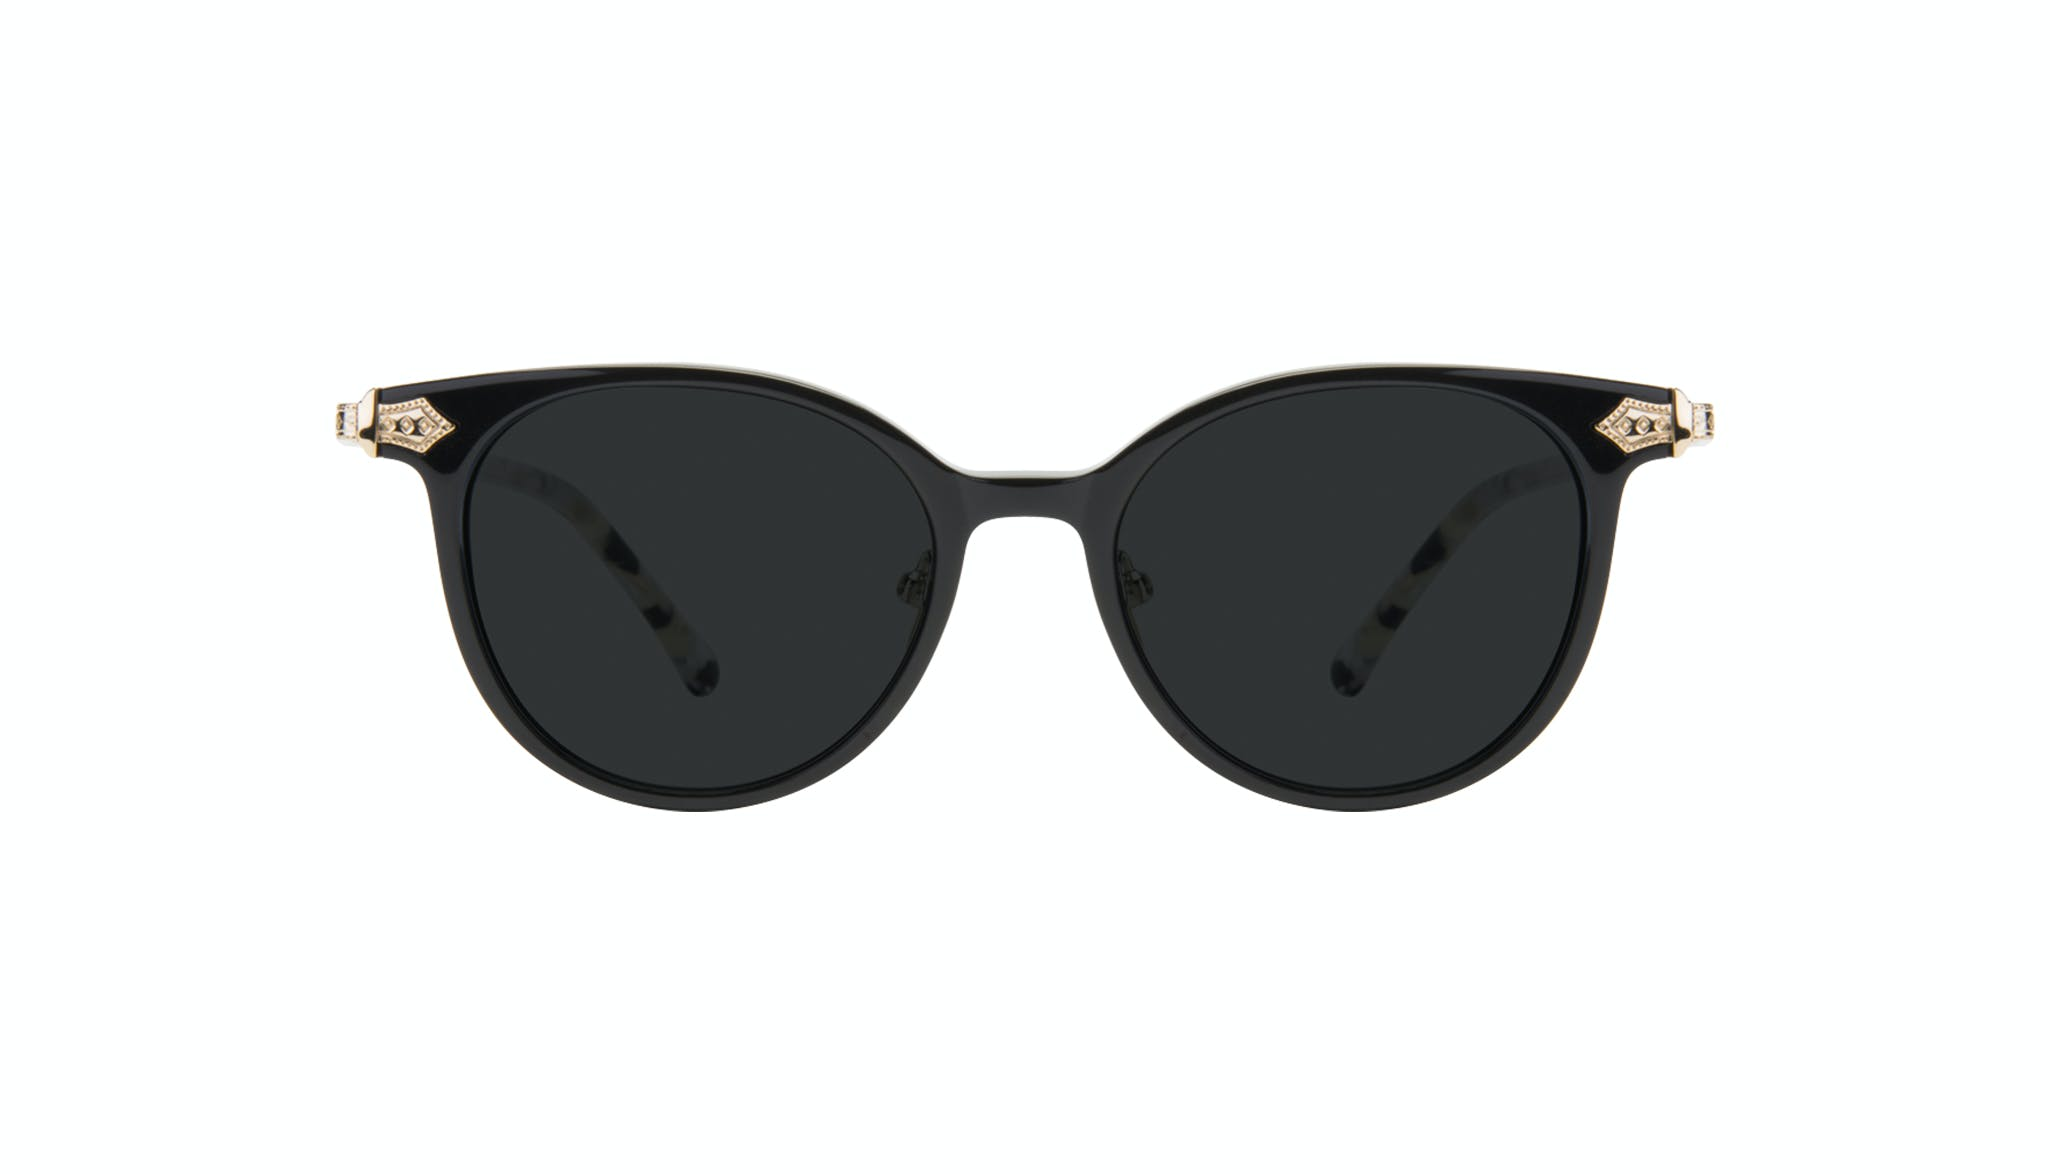 Affordable Fashion Glasses Round Sunglasses Women Gem Onyx Marble Front